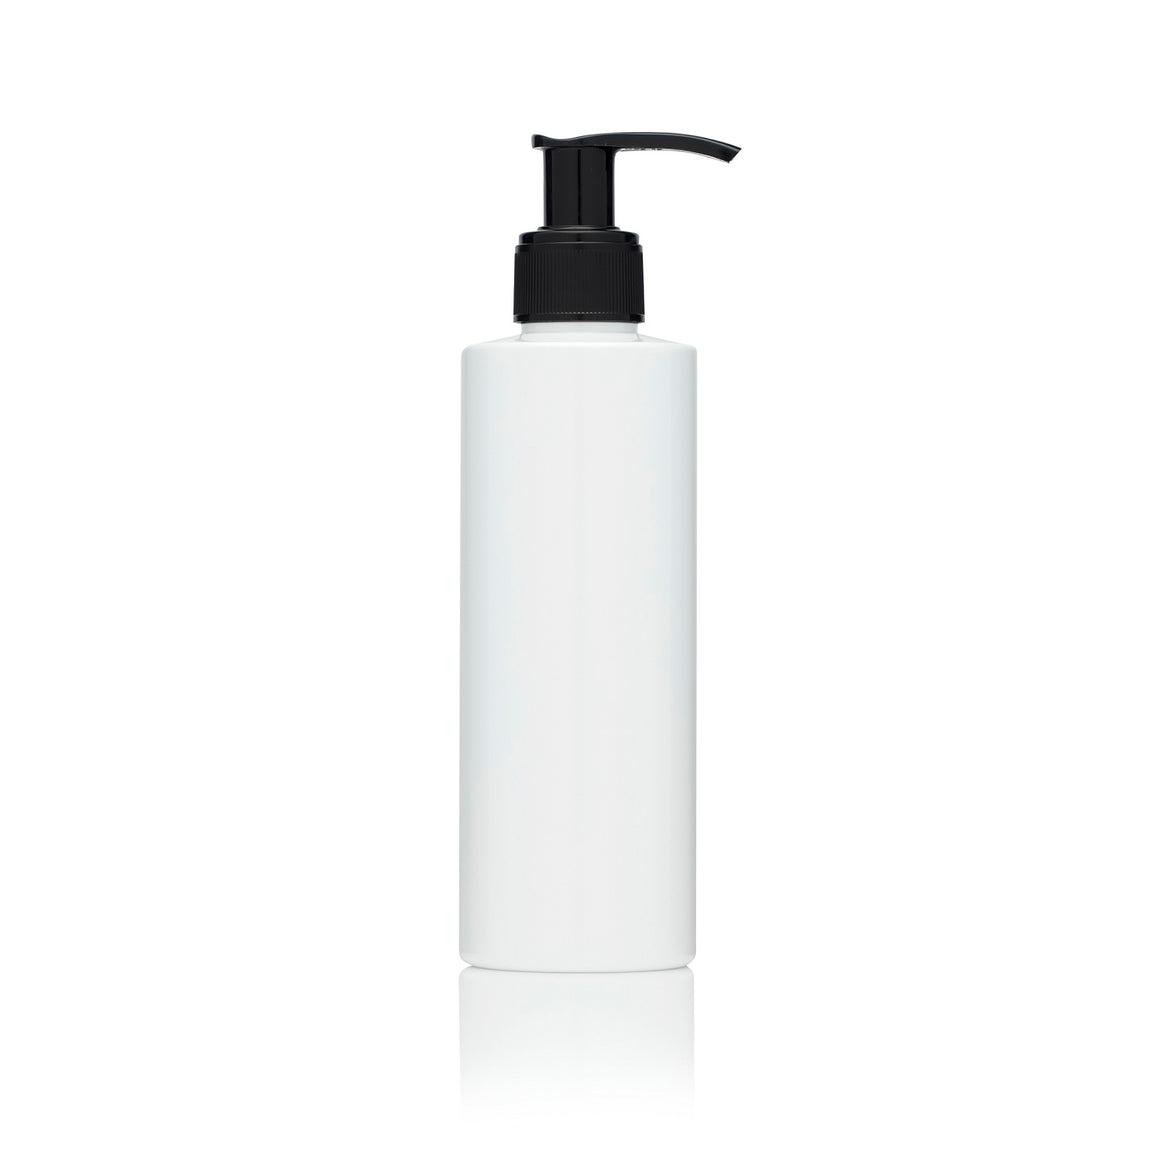 Enzyme Gel Cleanser - 200ml Classic